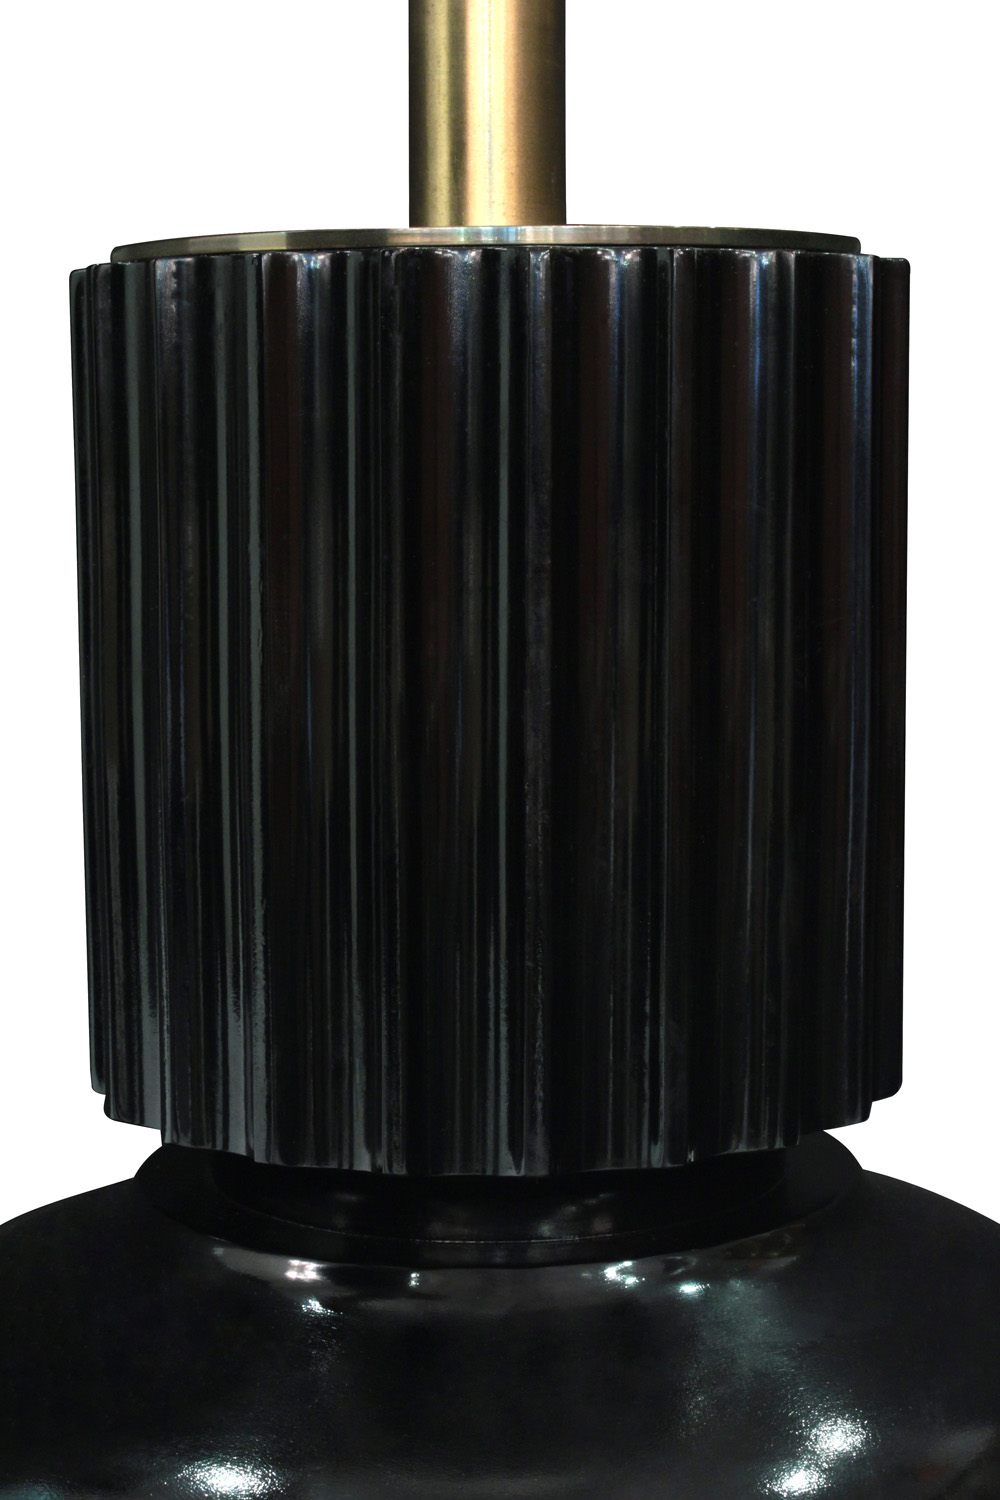 Mont 220 black blk+bronze legs tablelamps316 detail5 hires.jpg